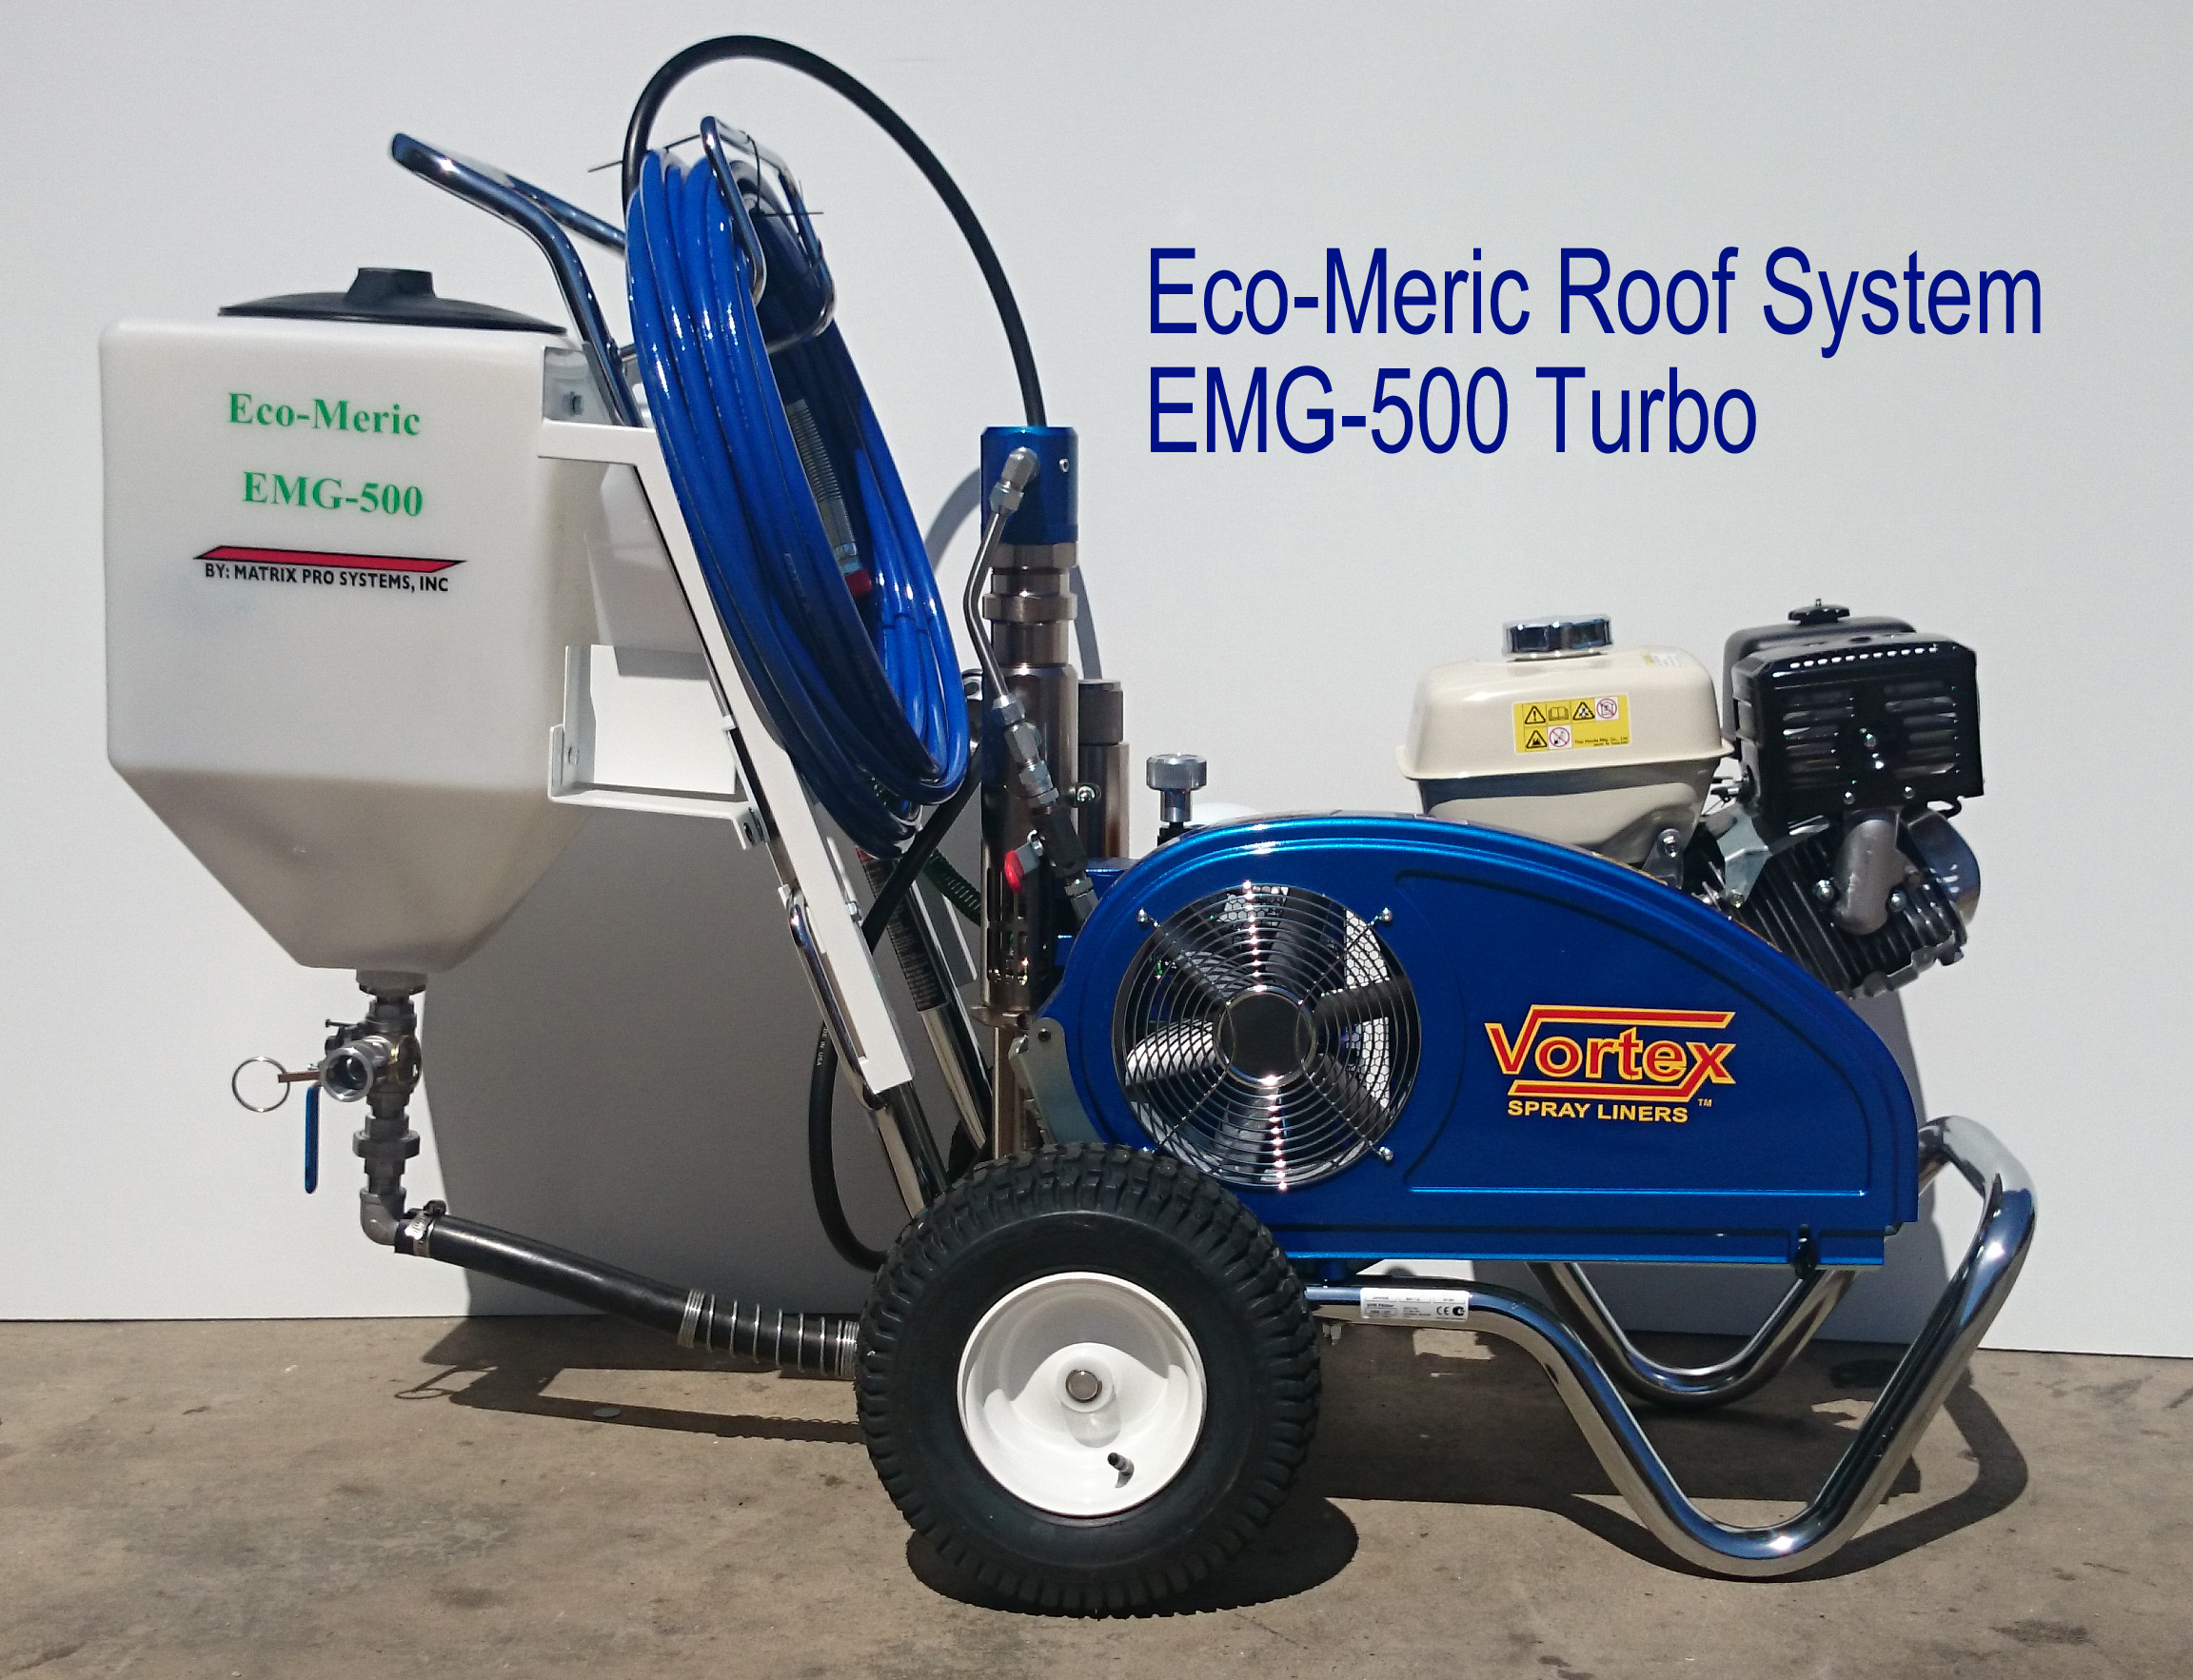 Eco-Meric Roof System EMG-500 Turbo